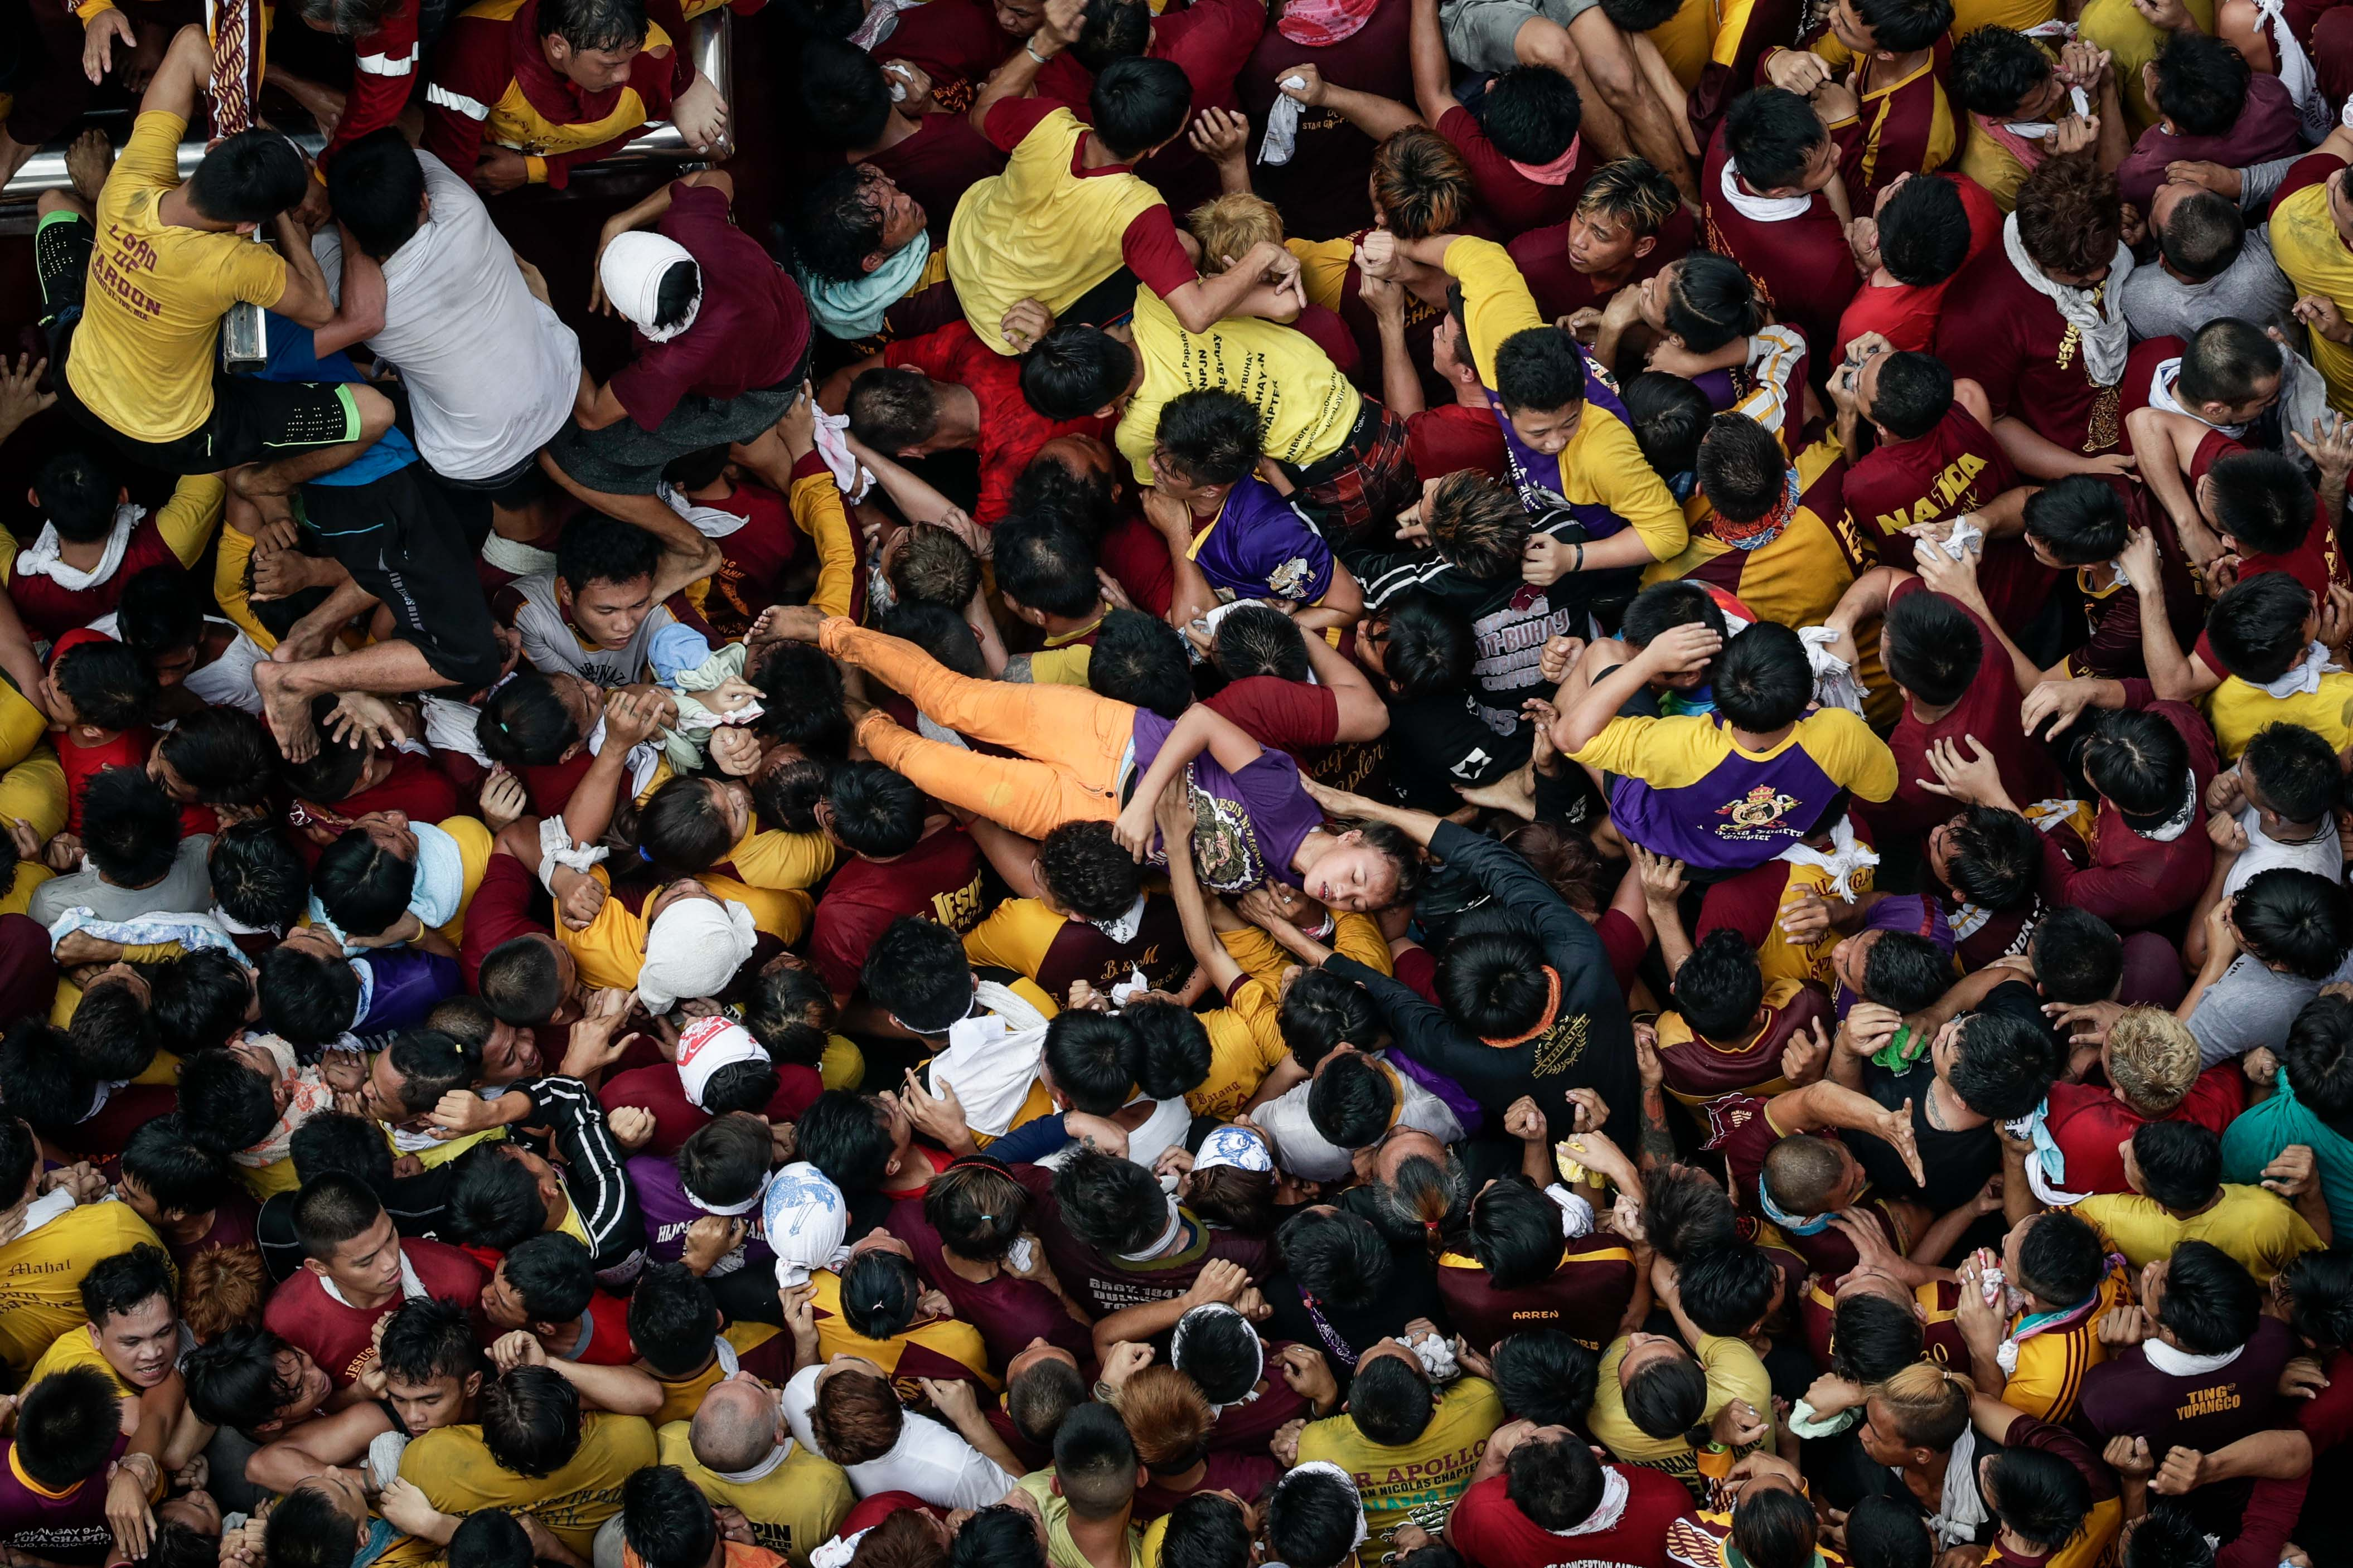 A woman is carried off by a crowd of devotees near the statue of the Black Nazarene during the procession at the Jones Bridge in Manila on Jan. 9, 2017